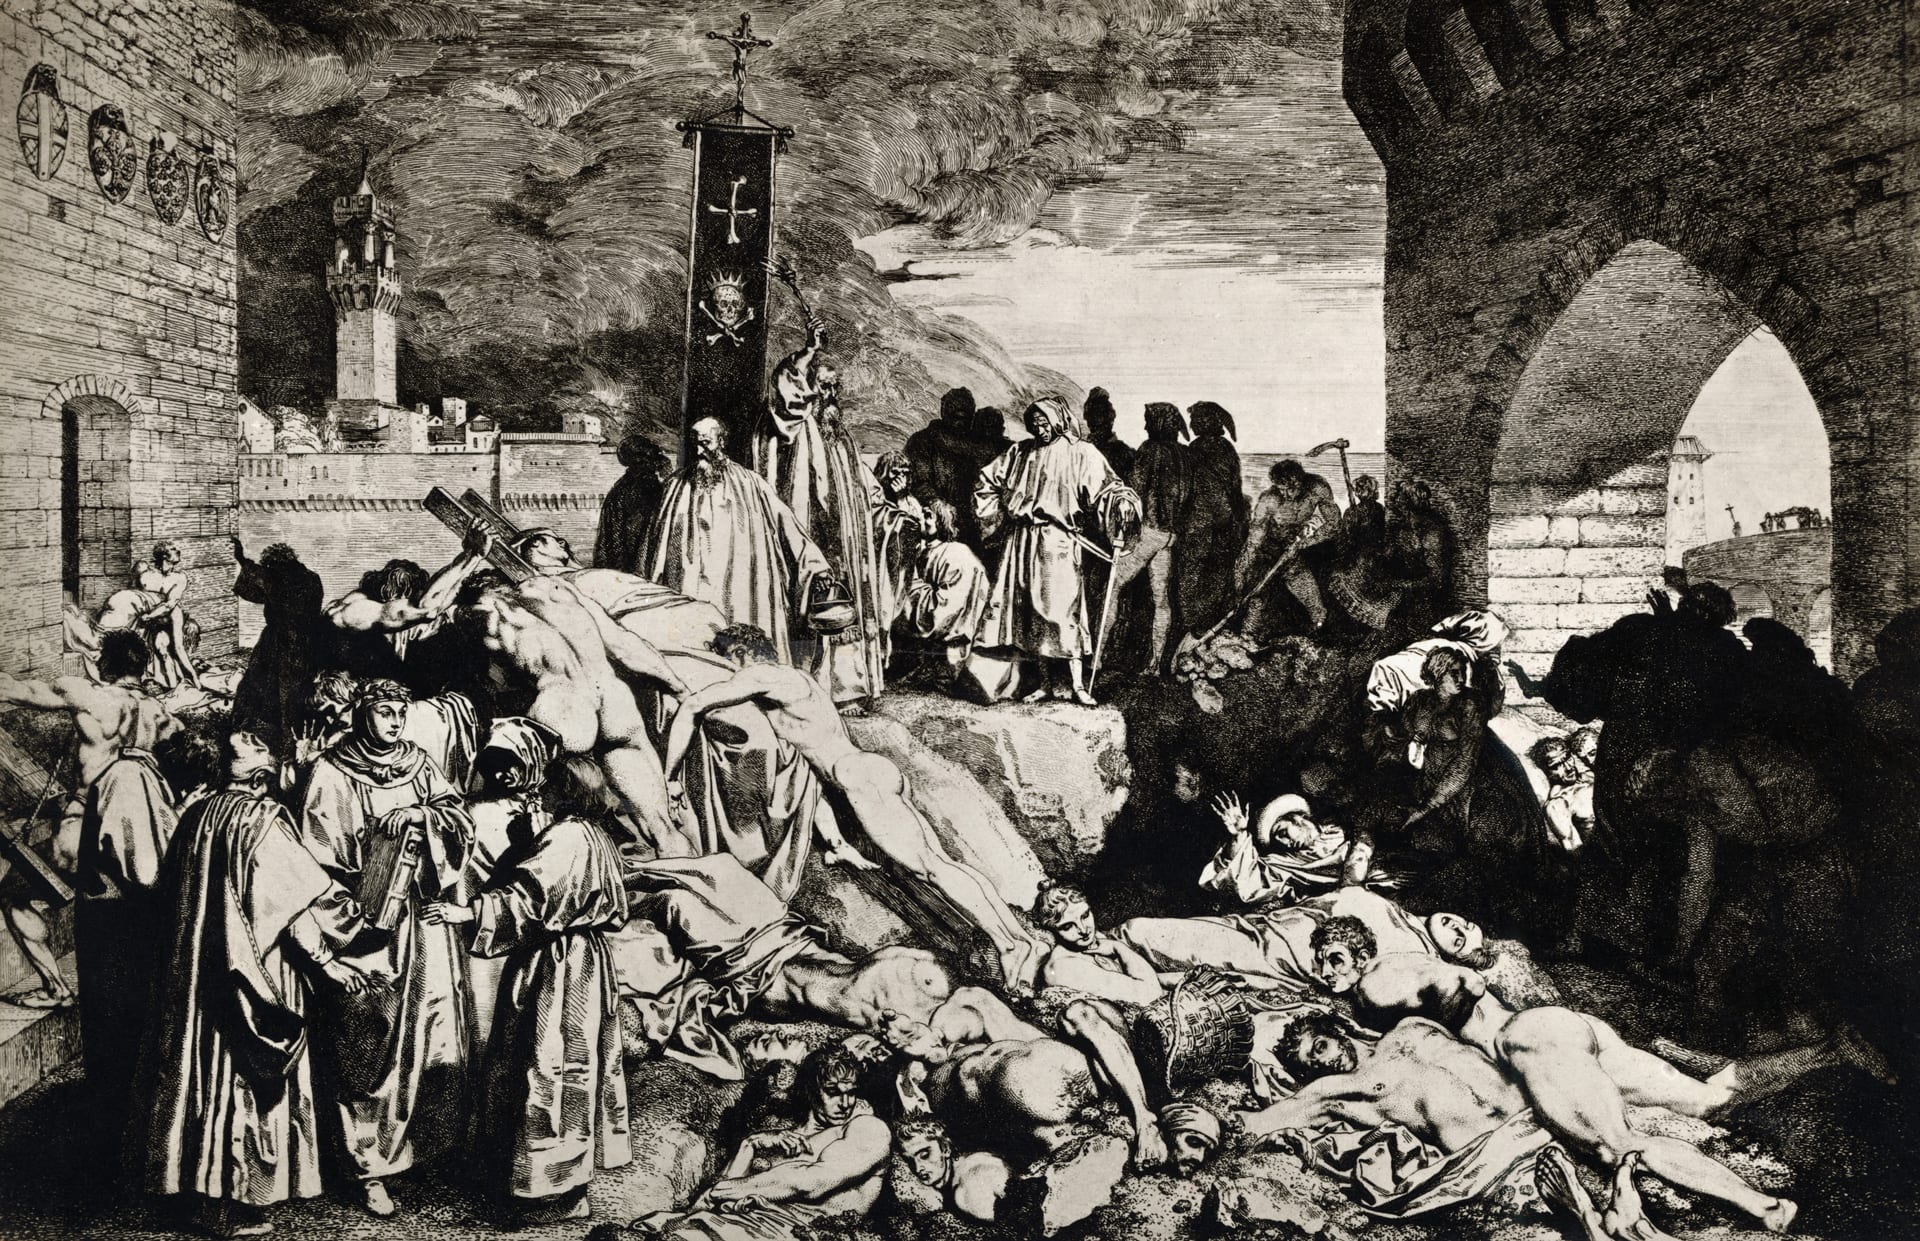 Black Death wiped a large percentage of world's population